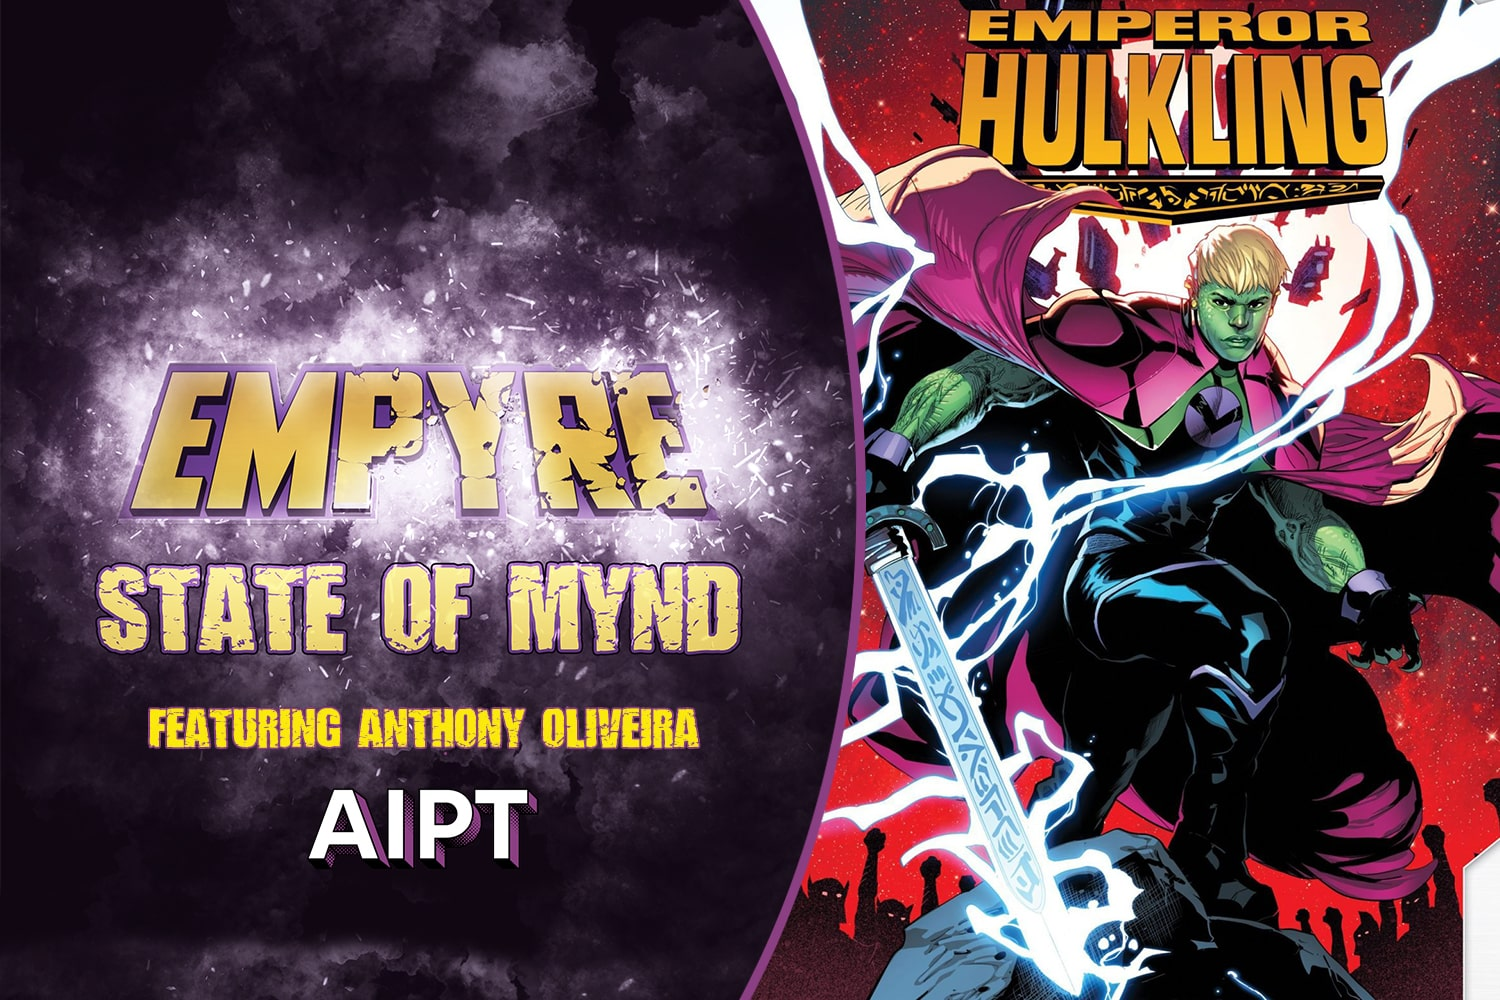 Fans get to ask Anthony Oliveira, co-writer of Lords of Empyre: Emperor Hulkling, their best questions.